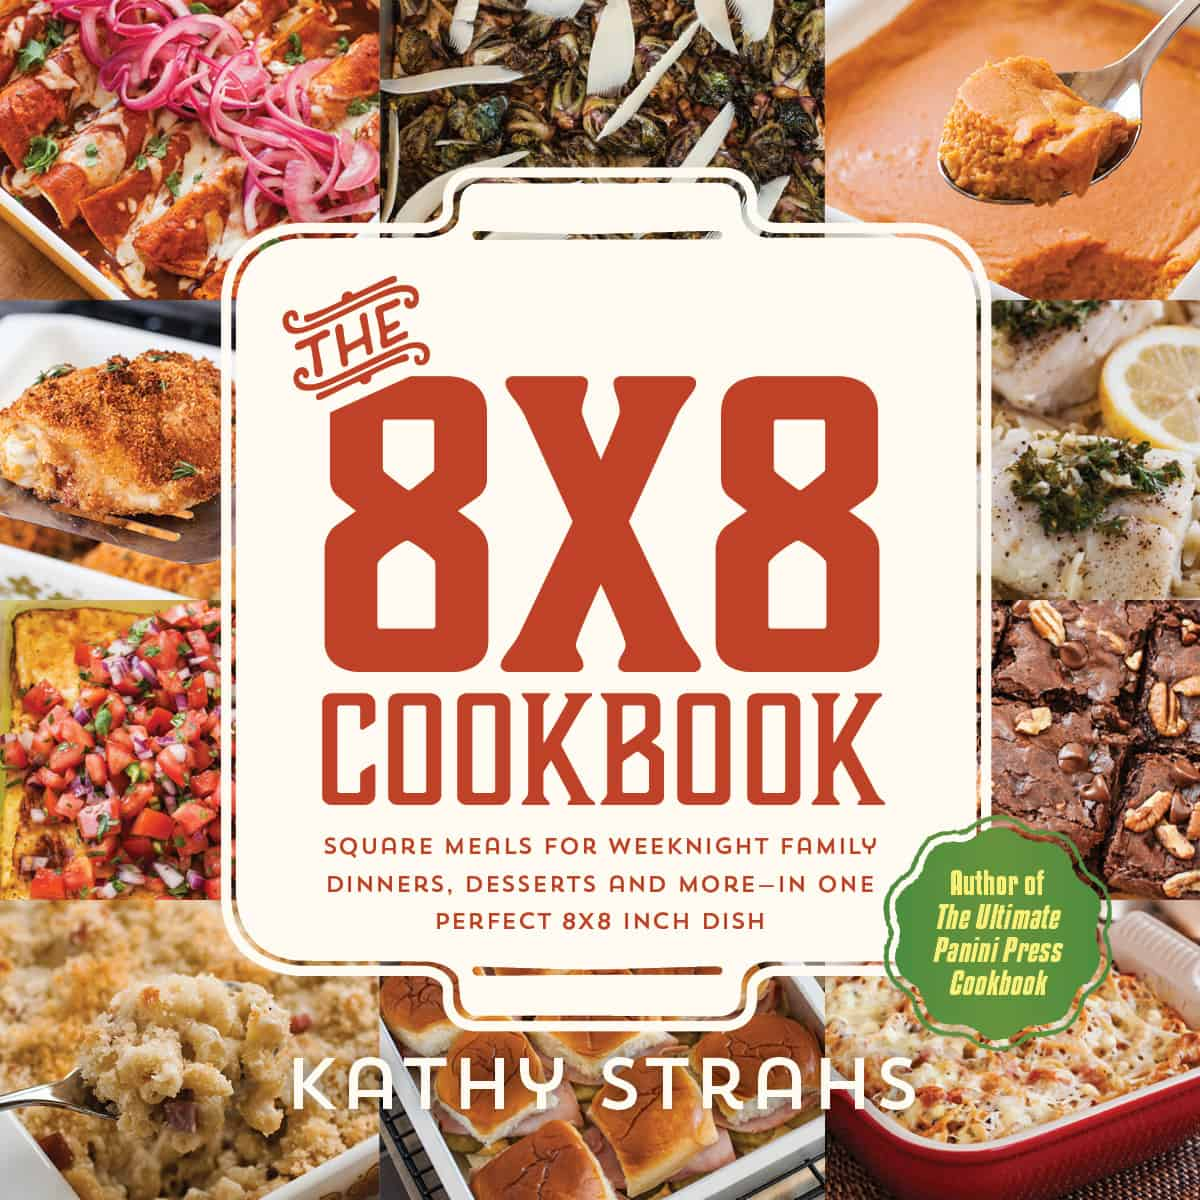 The 8x8 cookbook by Kathy Strahs - cover image.